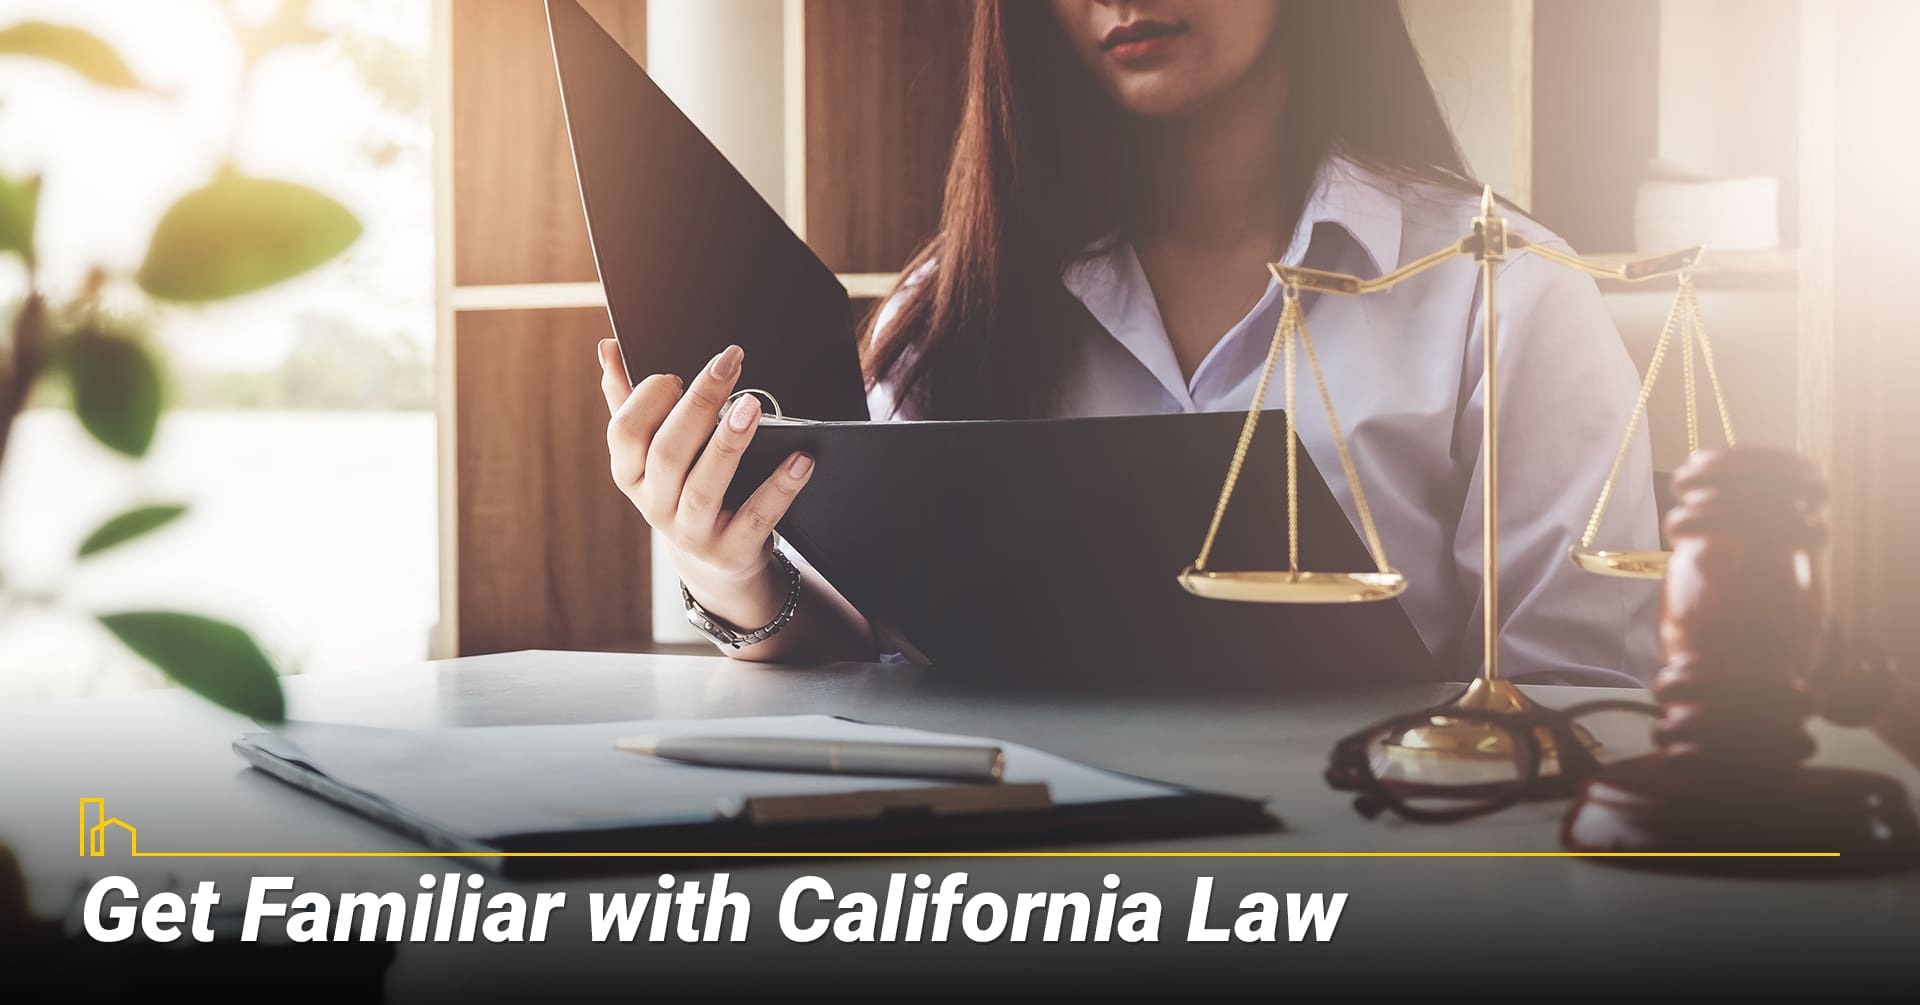 Get Familiar with California Law, learn local law